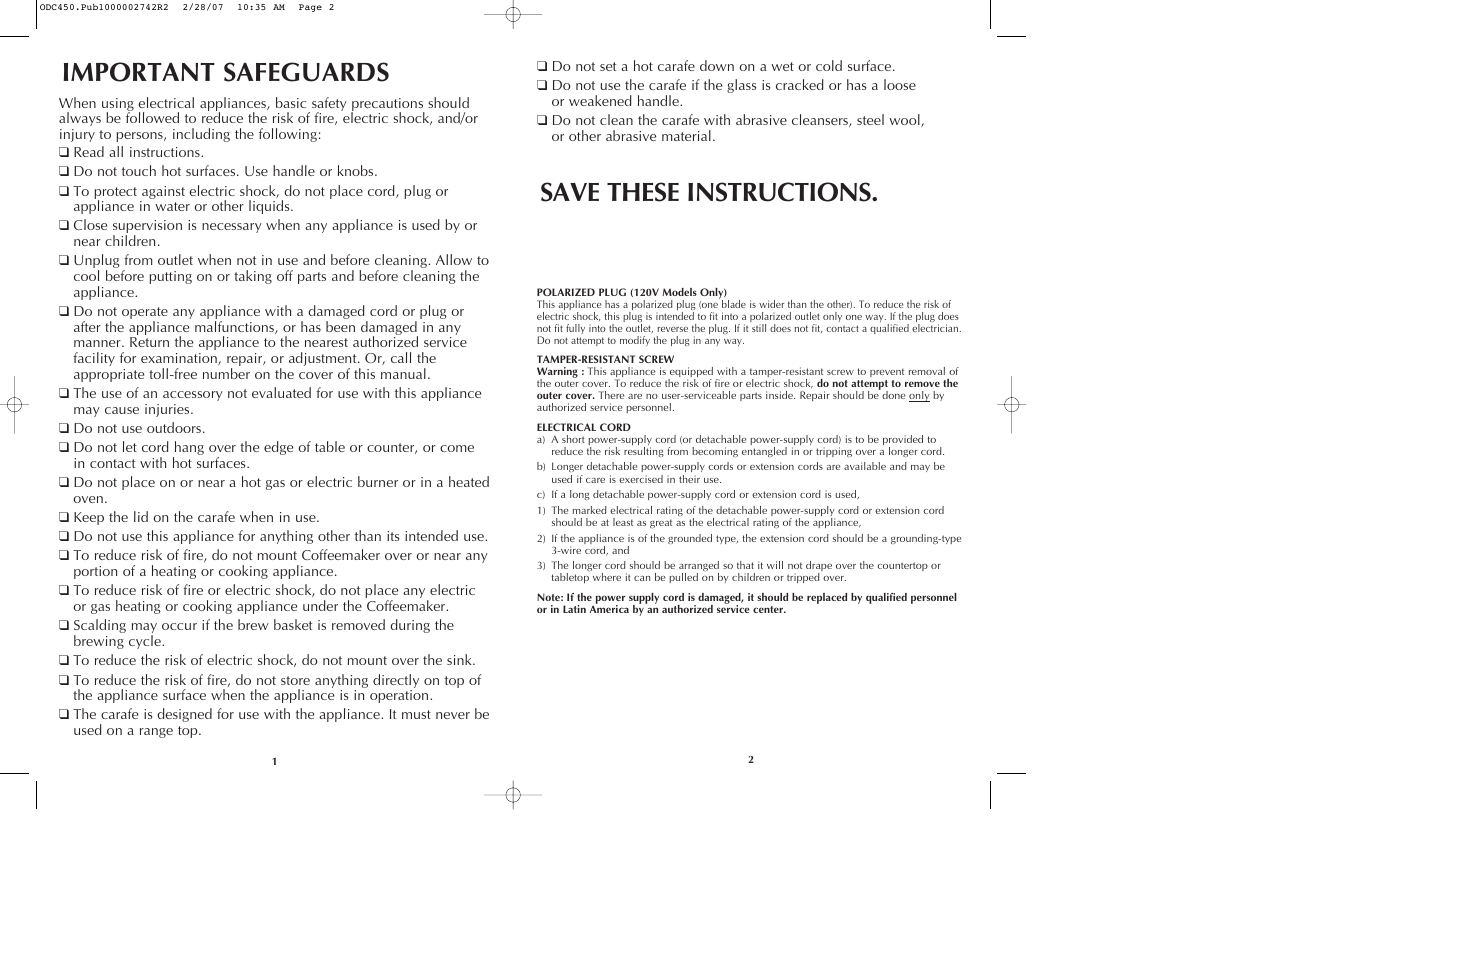 Important Safeguards  Save These Instructions